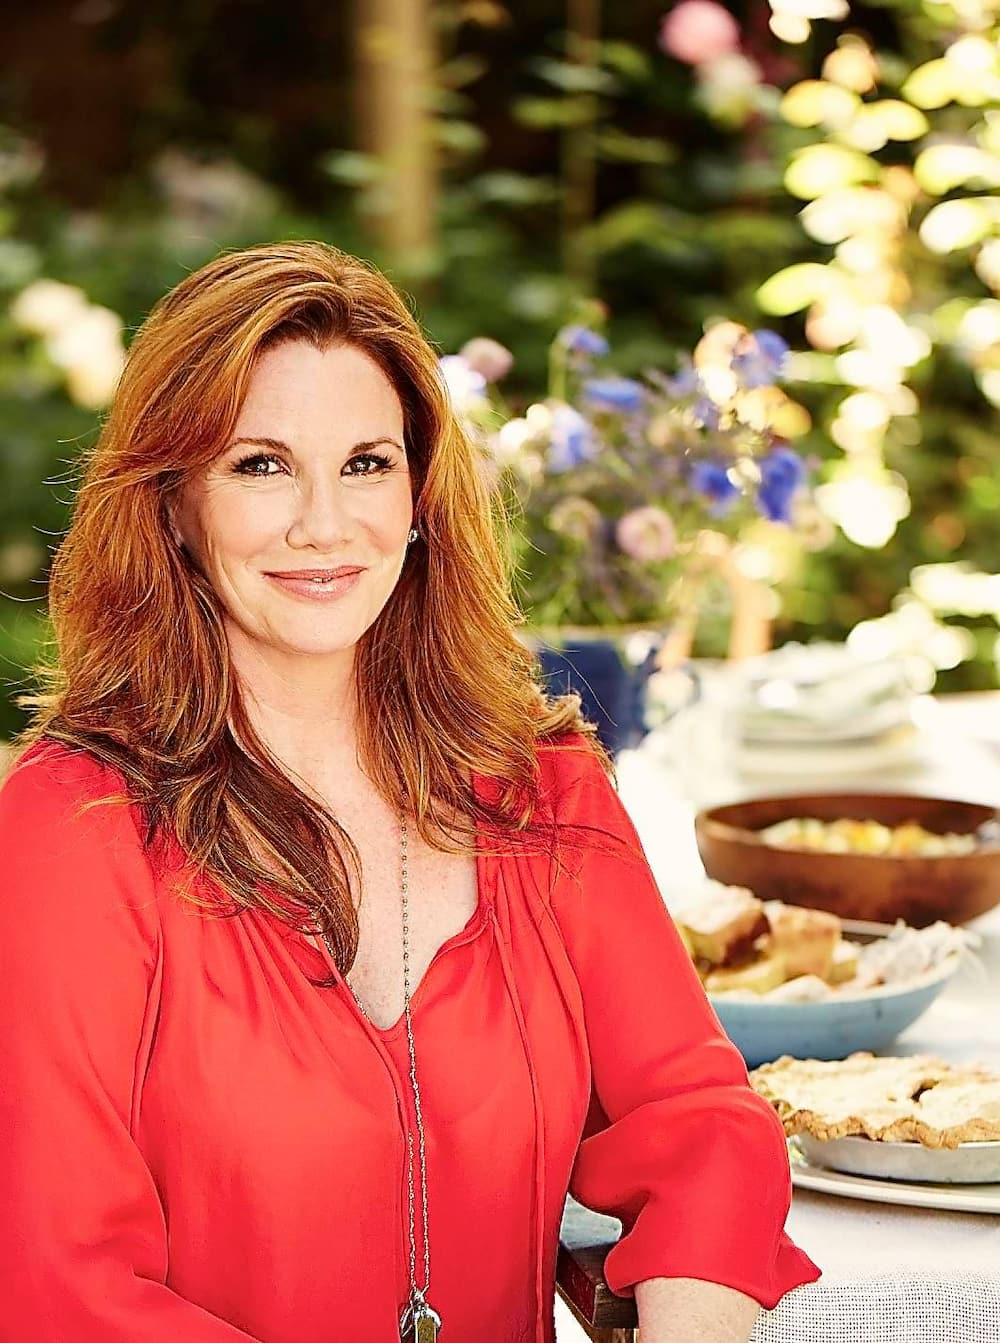 who is melissa gilbert married to